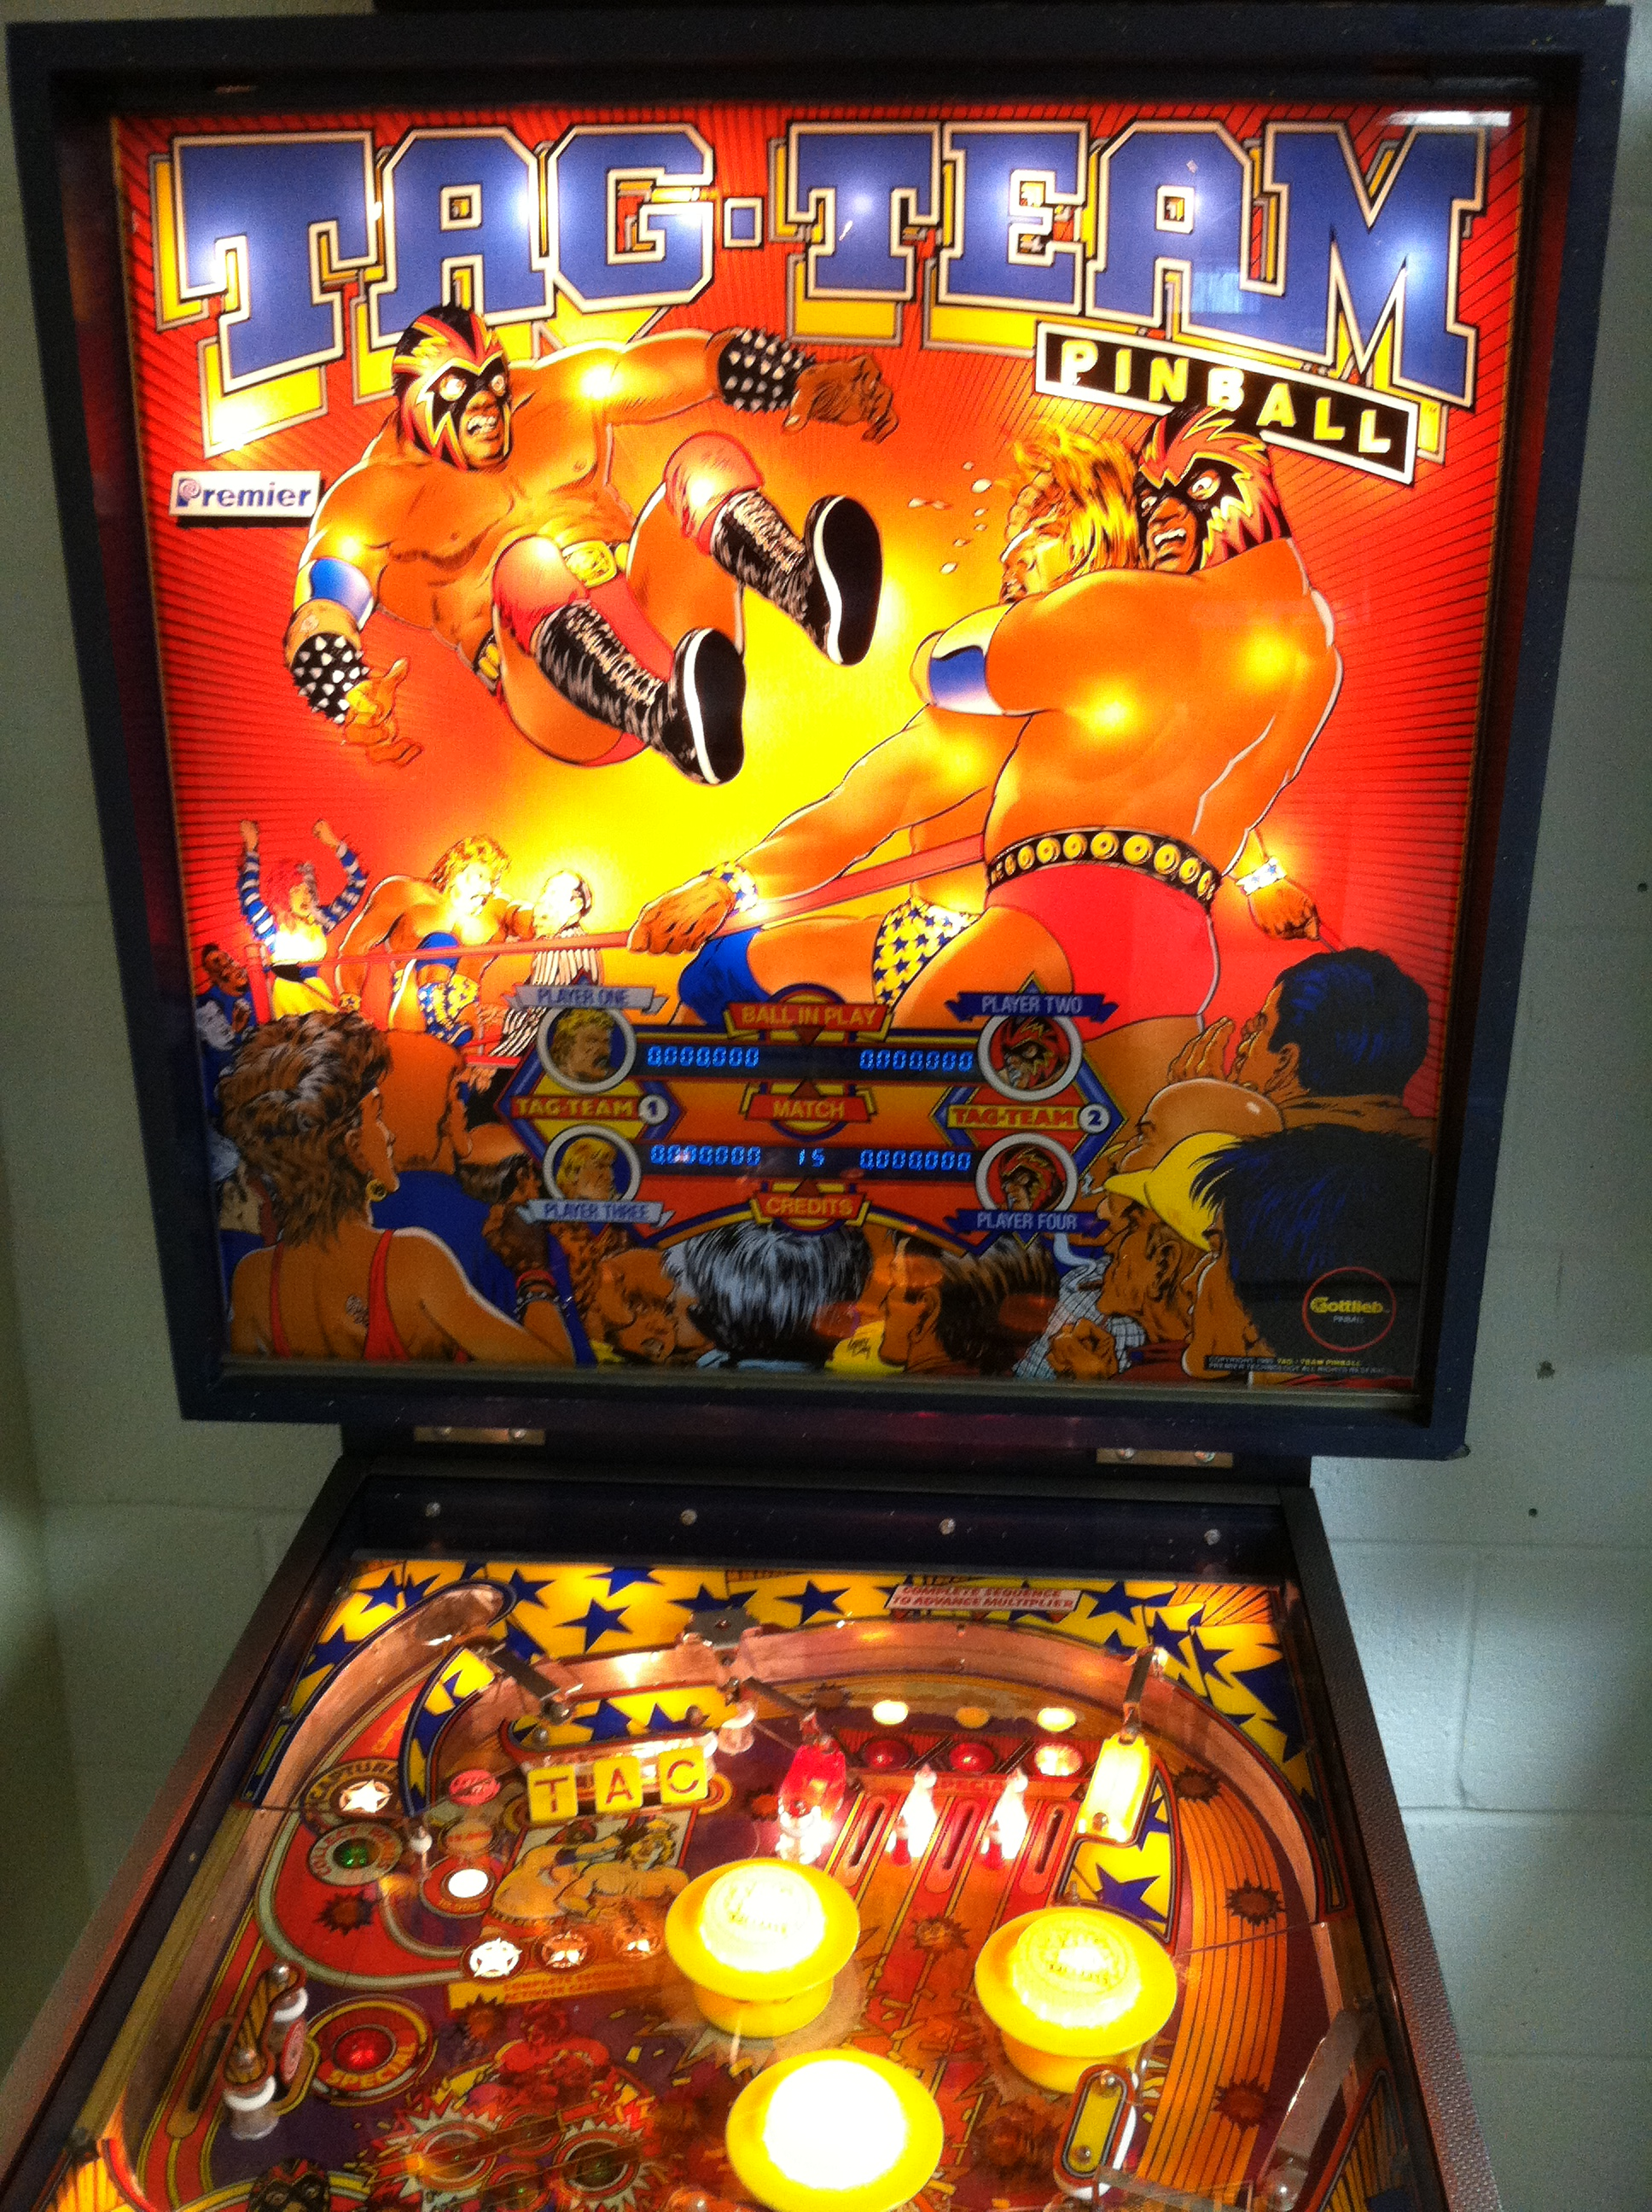 Lightning Pinball Machines And Arcade Games Buying And Service